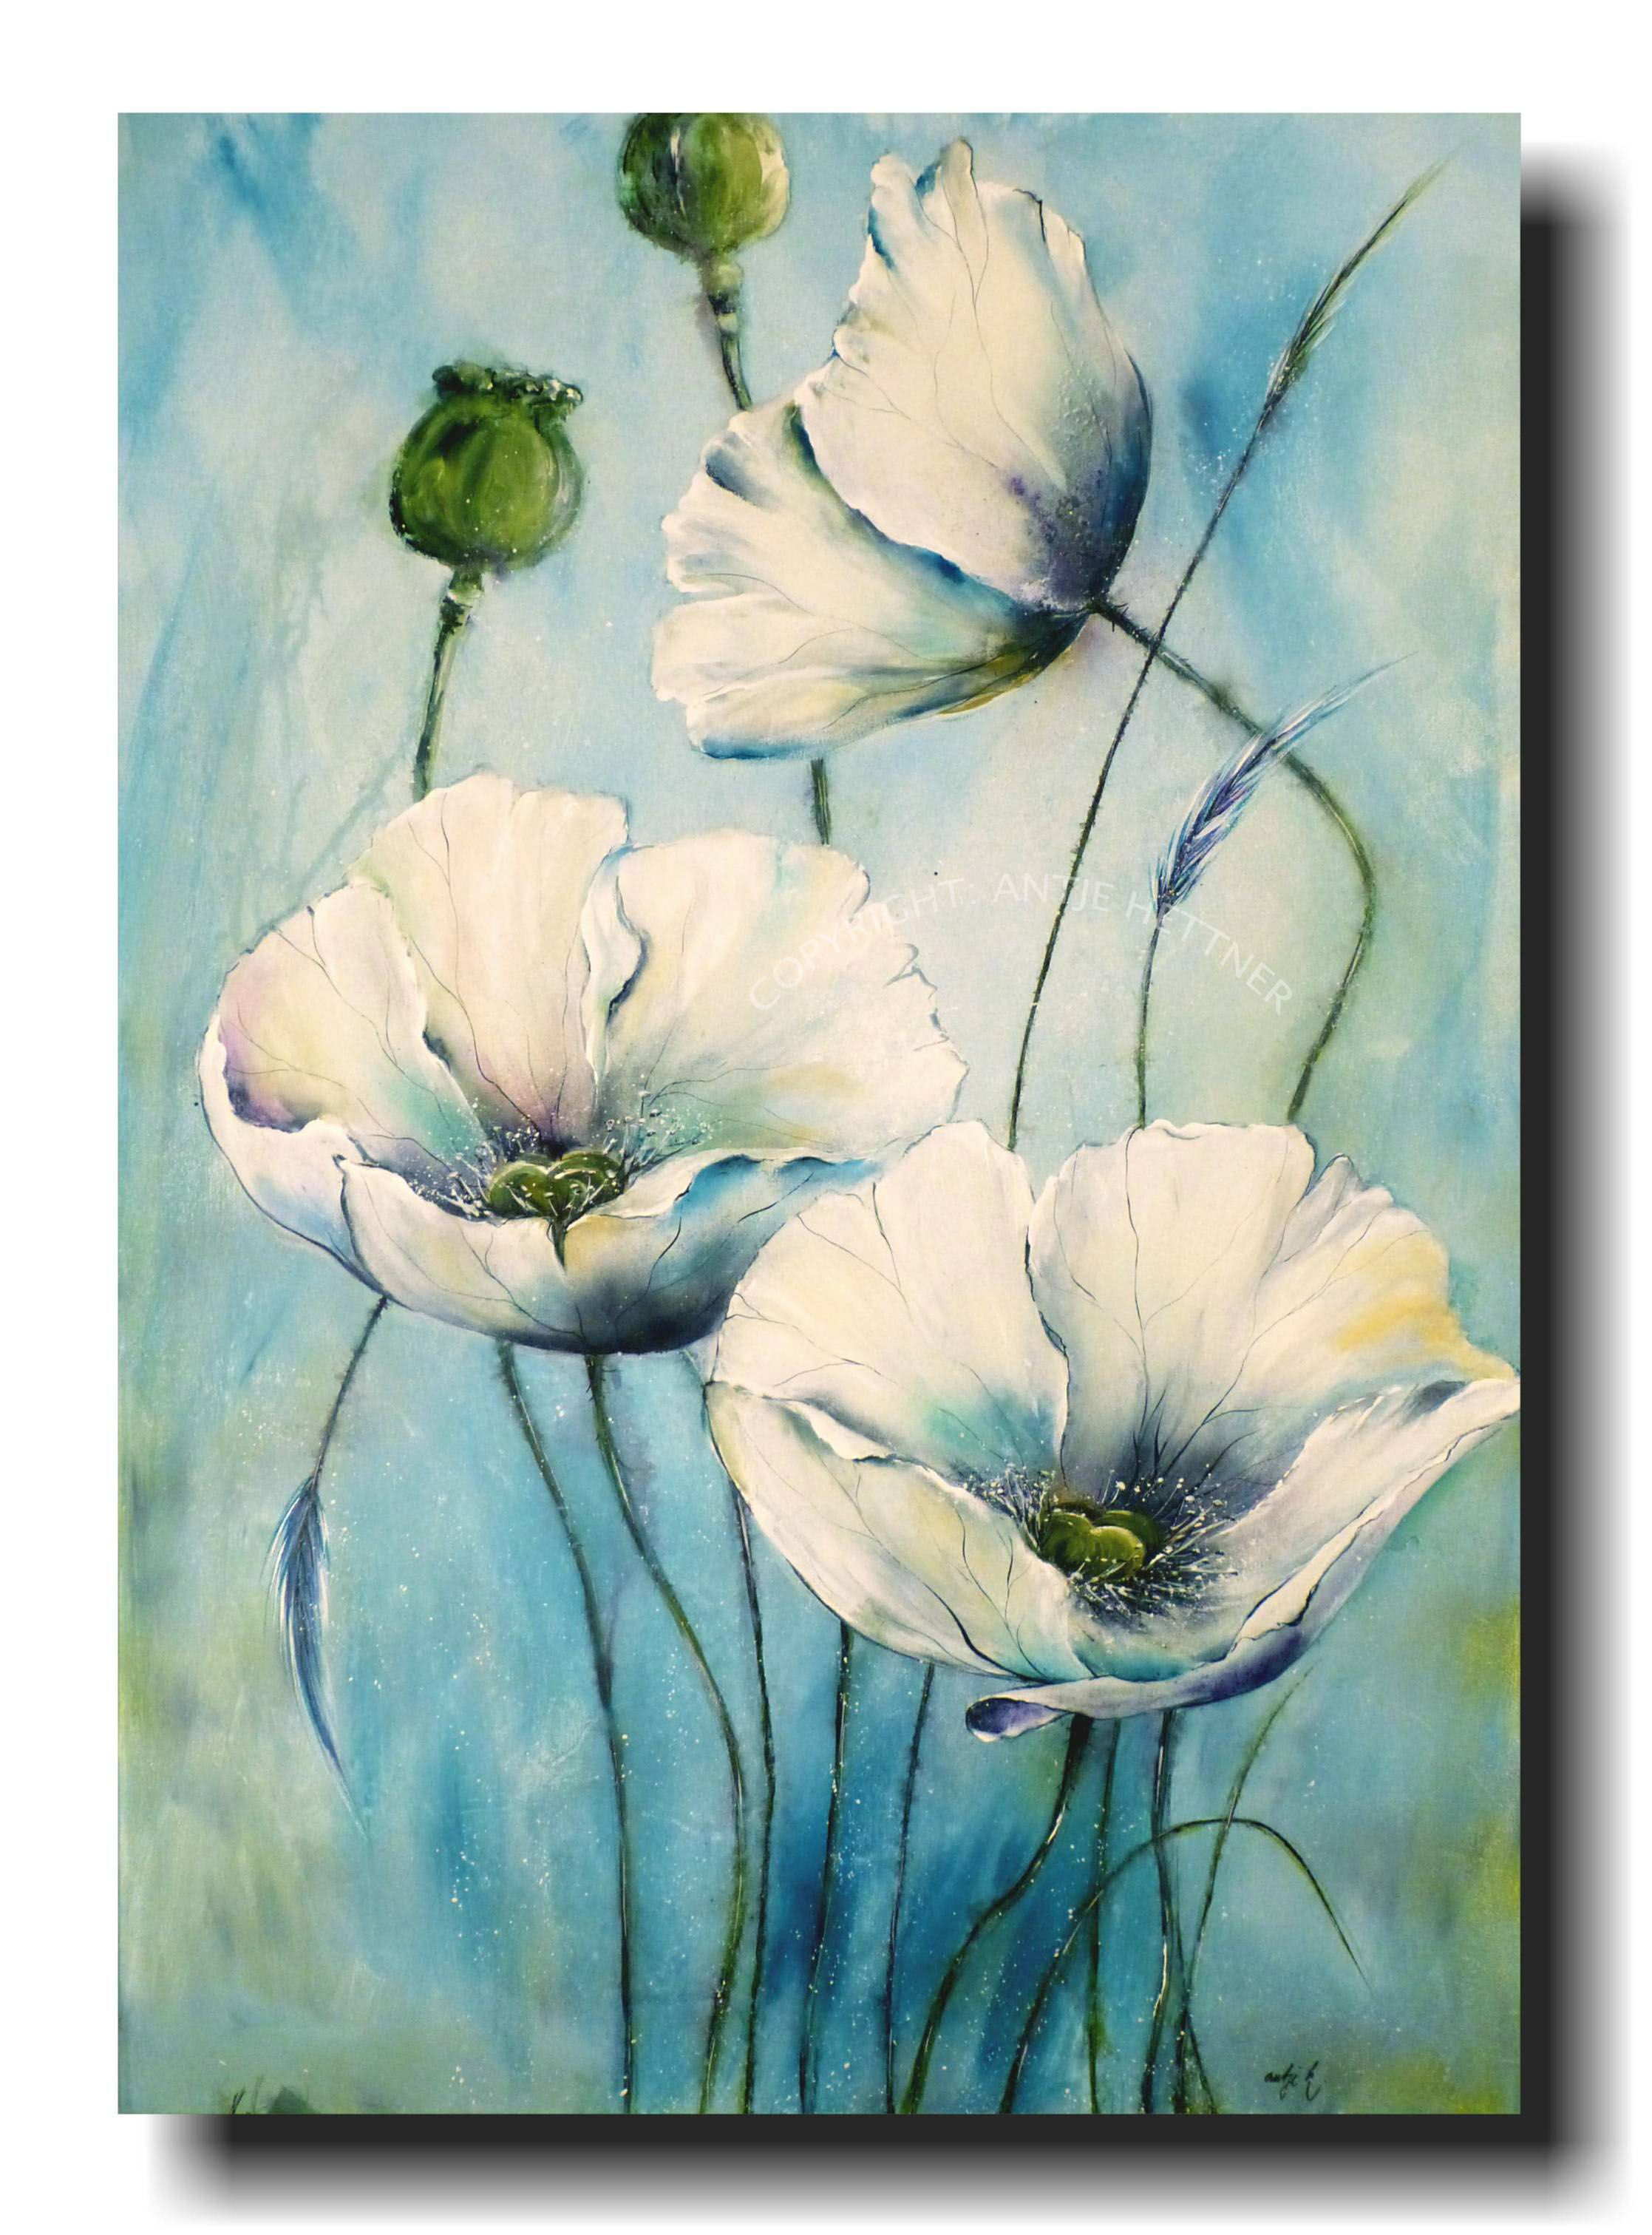 Starlight Poppies Acrylic Art On Canvas By Antje Hettner Blumen Malen Acryl Acryl Kunst